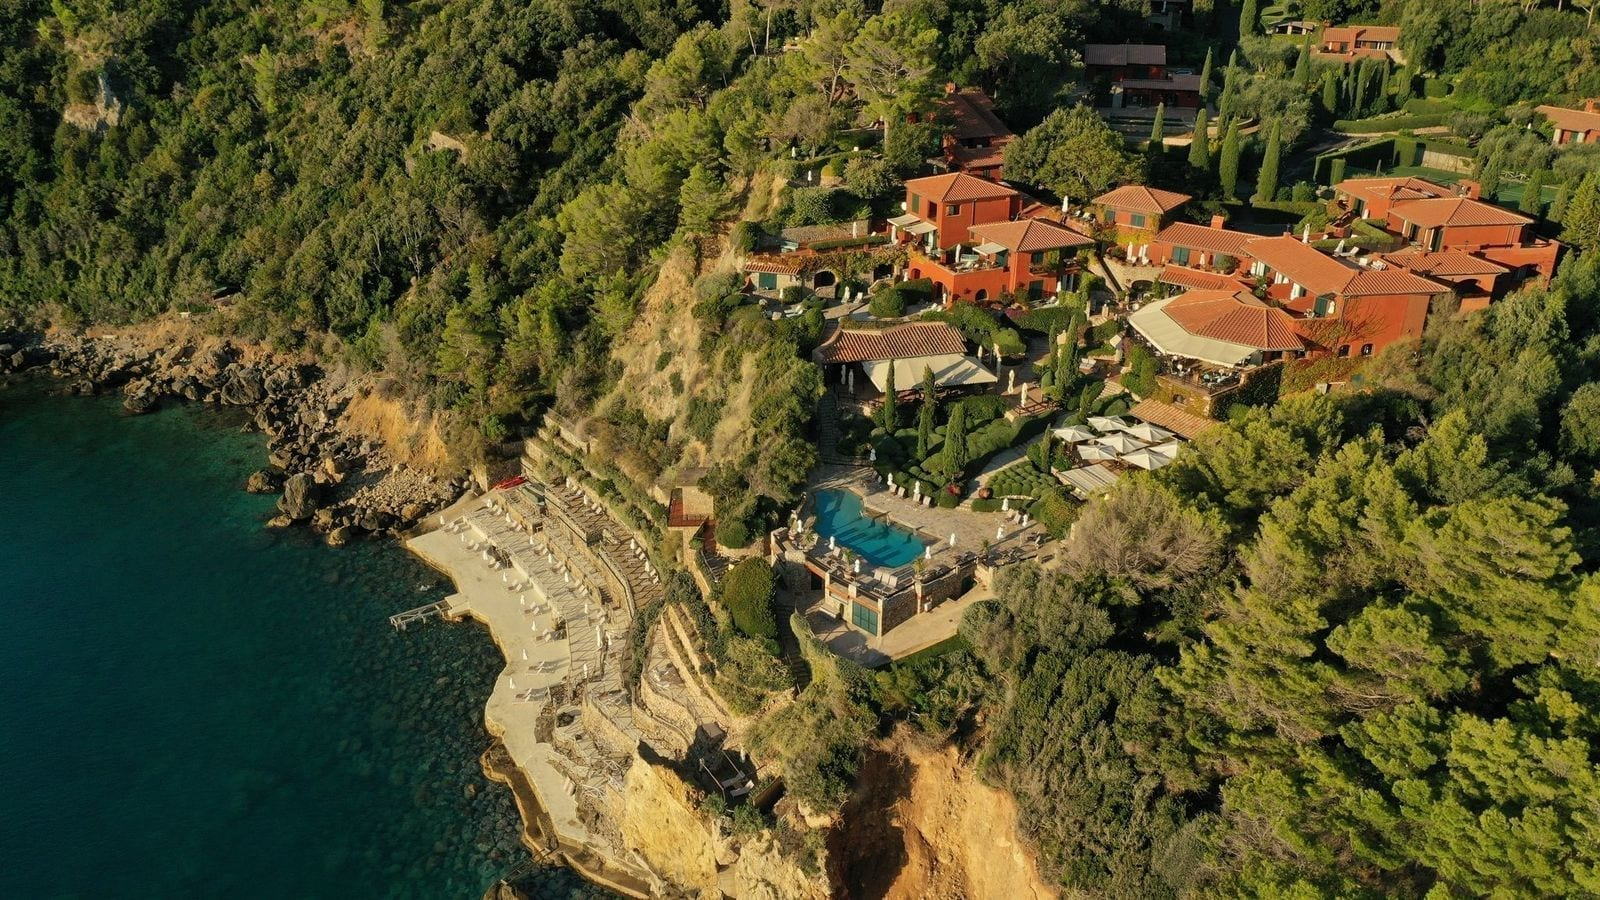 Nest Italy - Boutique Hotel in the Argentario